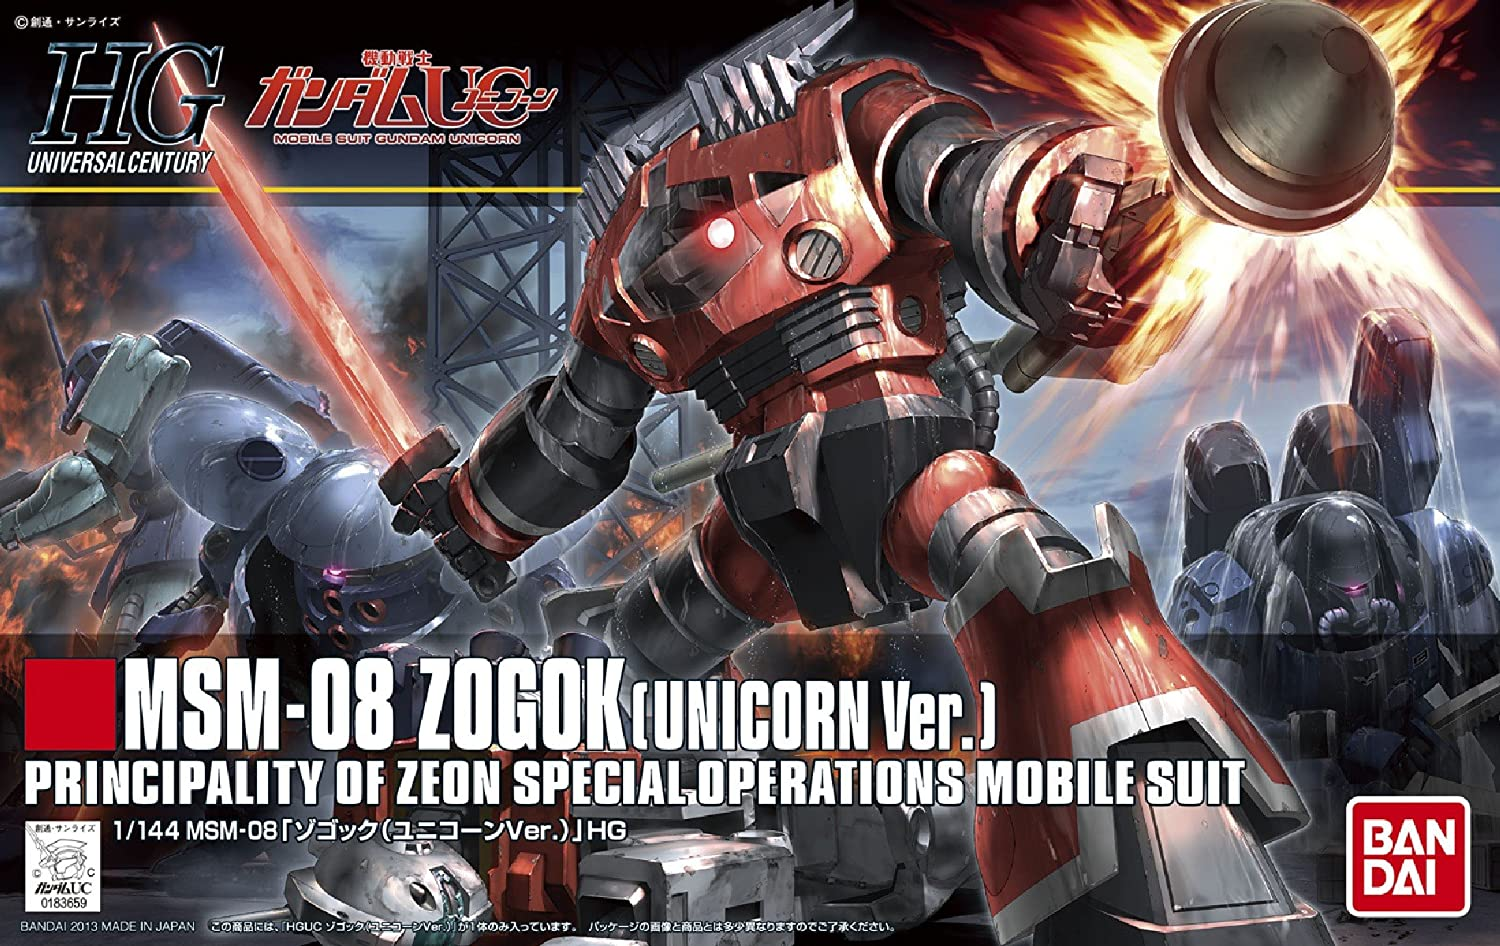 File:HGUC-Zogok-Box Art.jpg